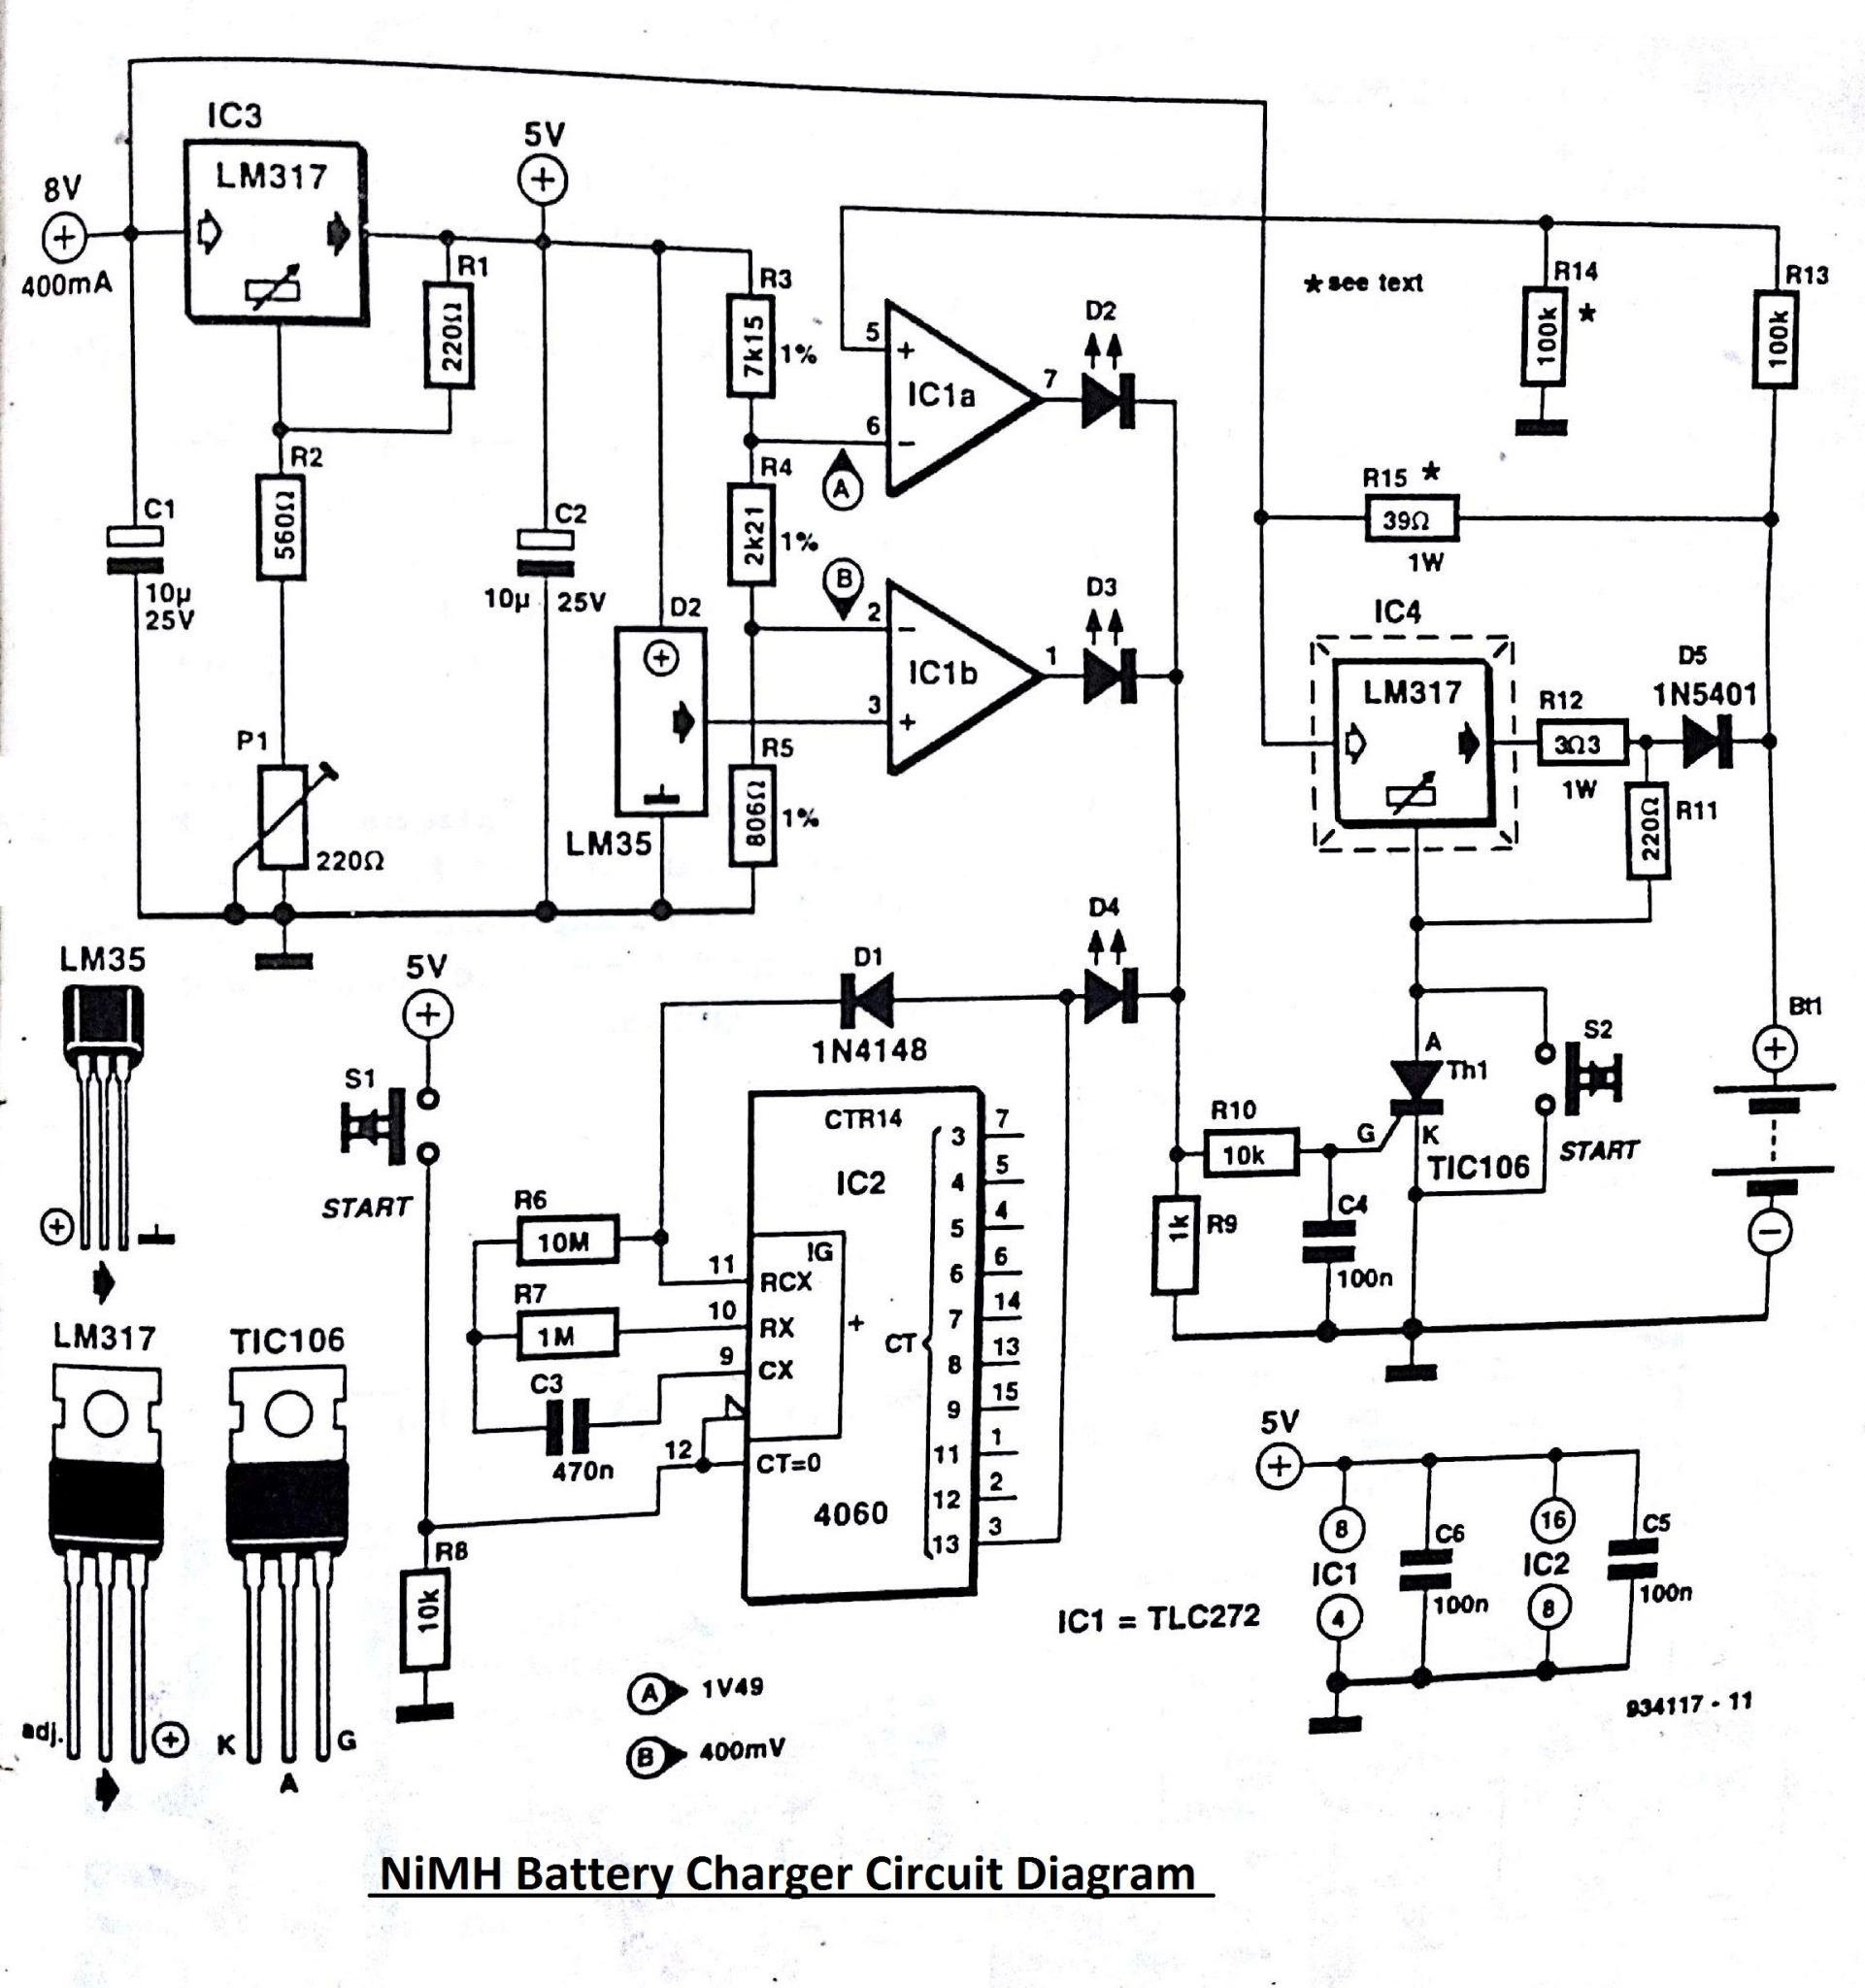 NiMH    Battery       Charger    Circuit    Diagram